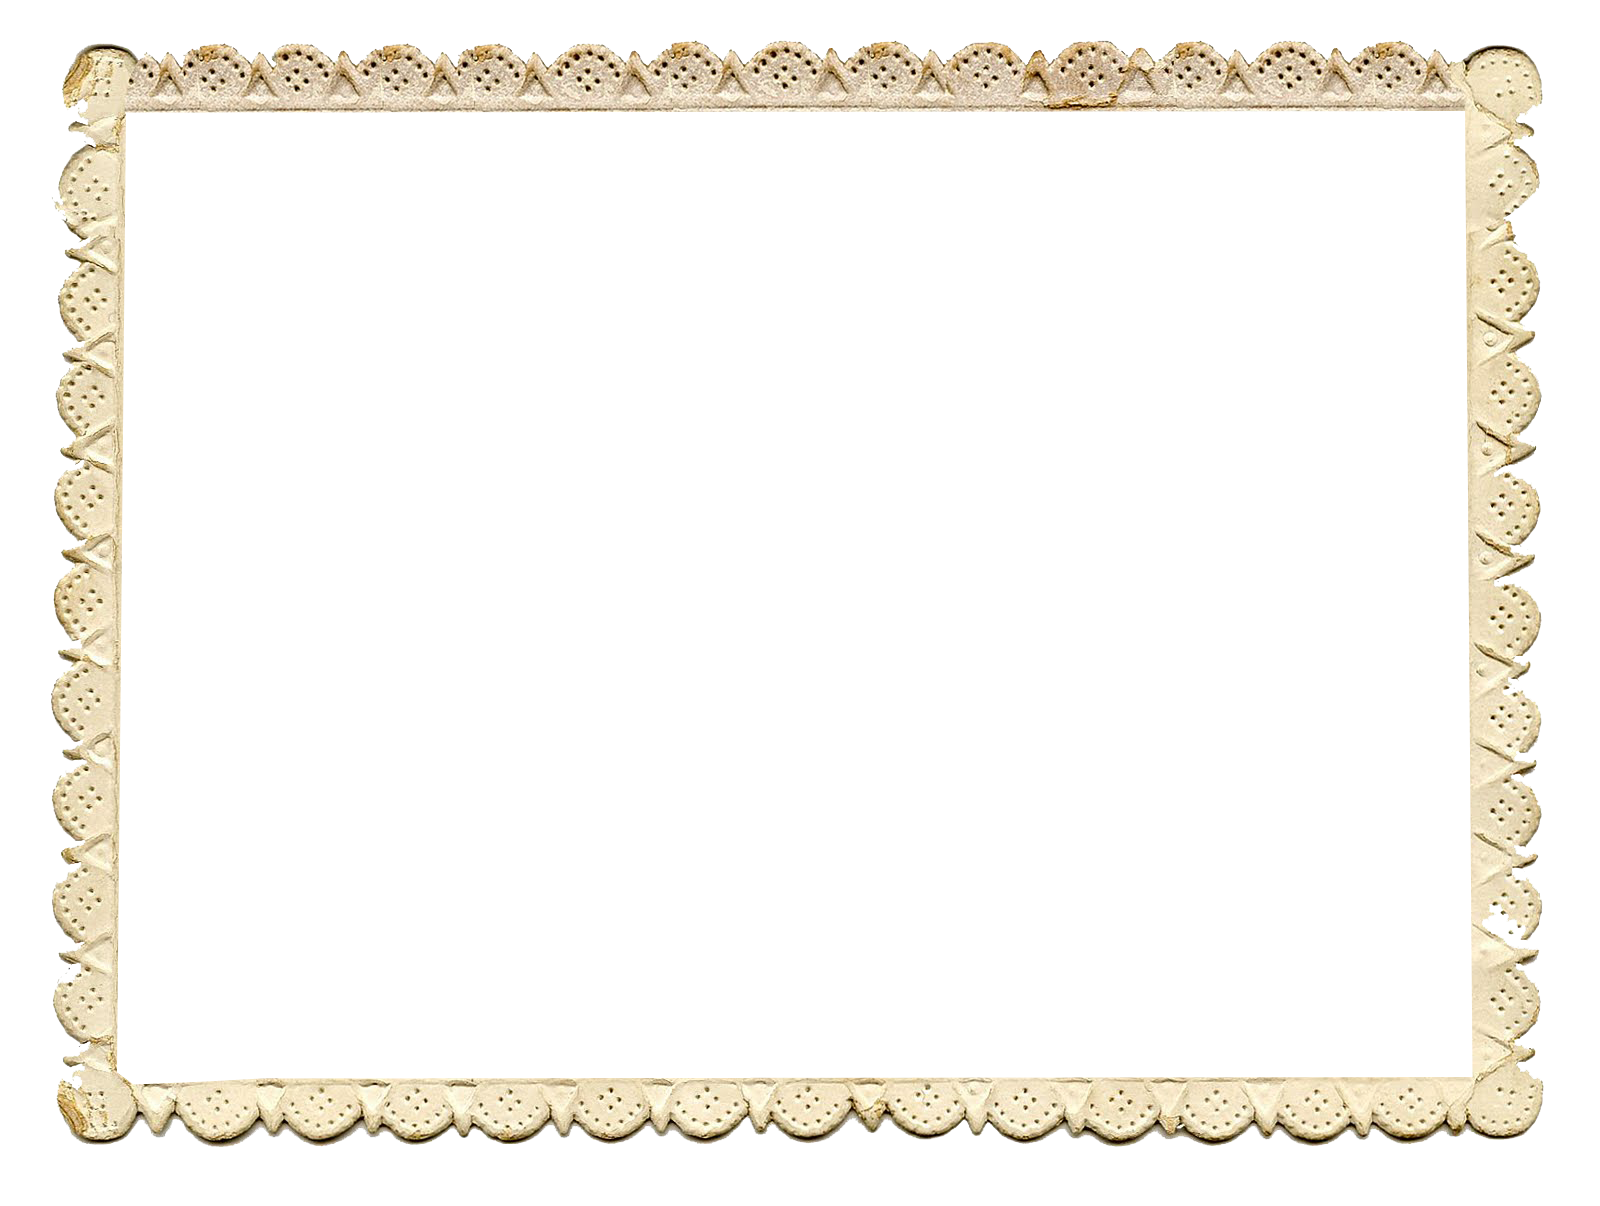 Free frames and borders. Vintage frame png